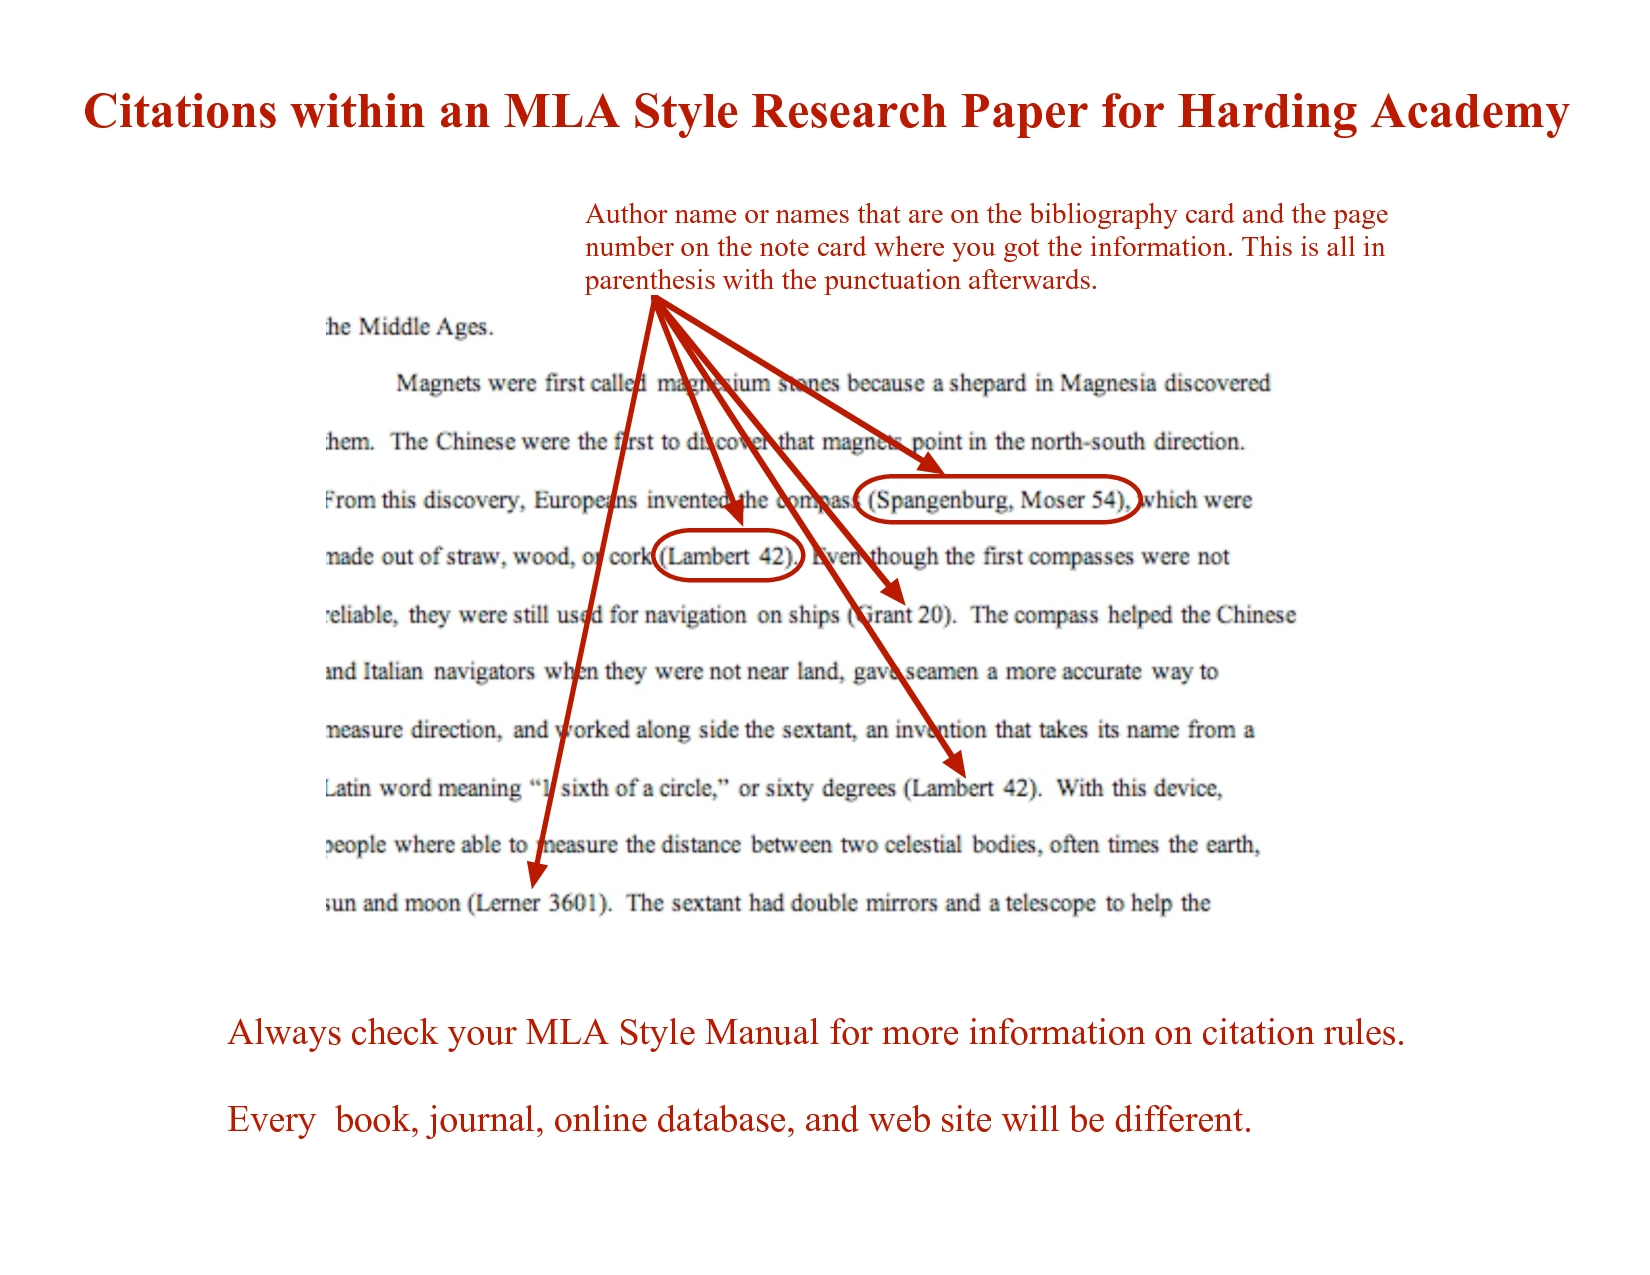 014 How Do You Cite An Essay To Sources In Citation Mla Twenty Hueandi Co Collection Of Solutions Quote From Website Stunning Research Papes Essays Apa Exceptional Wikipedia Text A Book Harvard Format Full